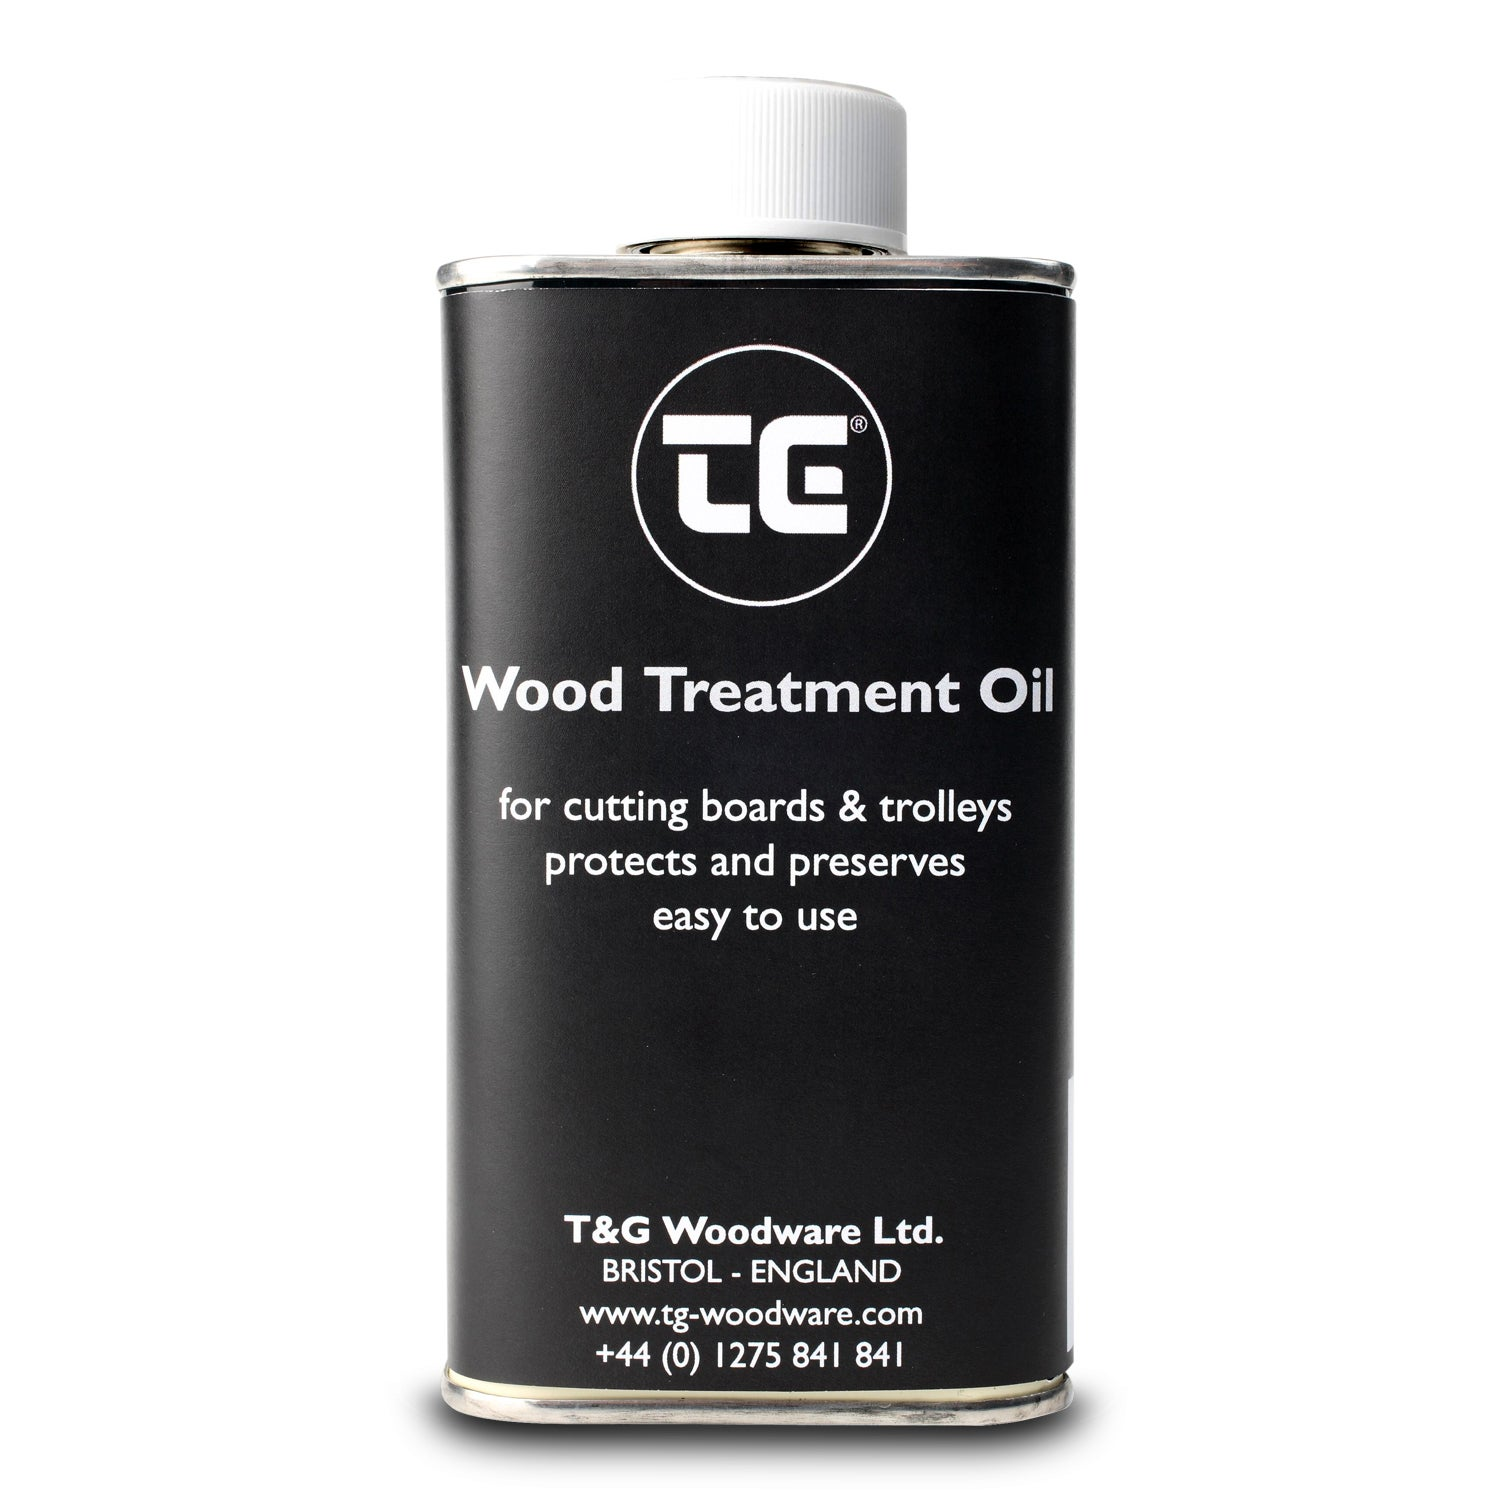 T & G Wood Treatment Oil